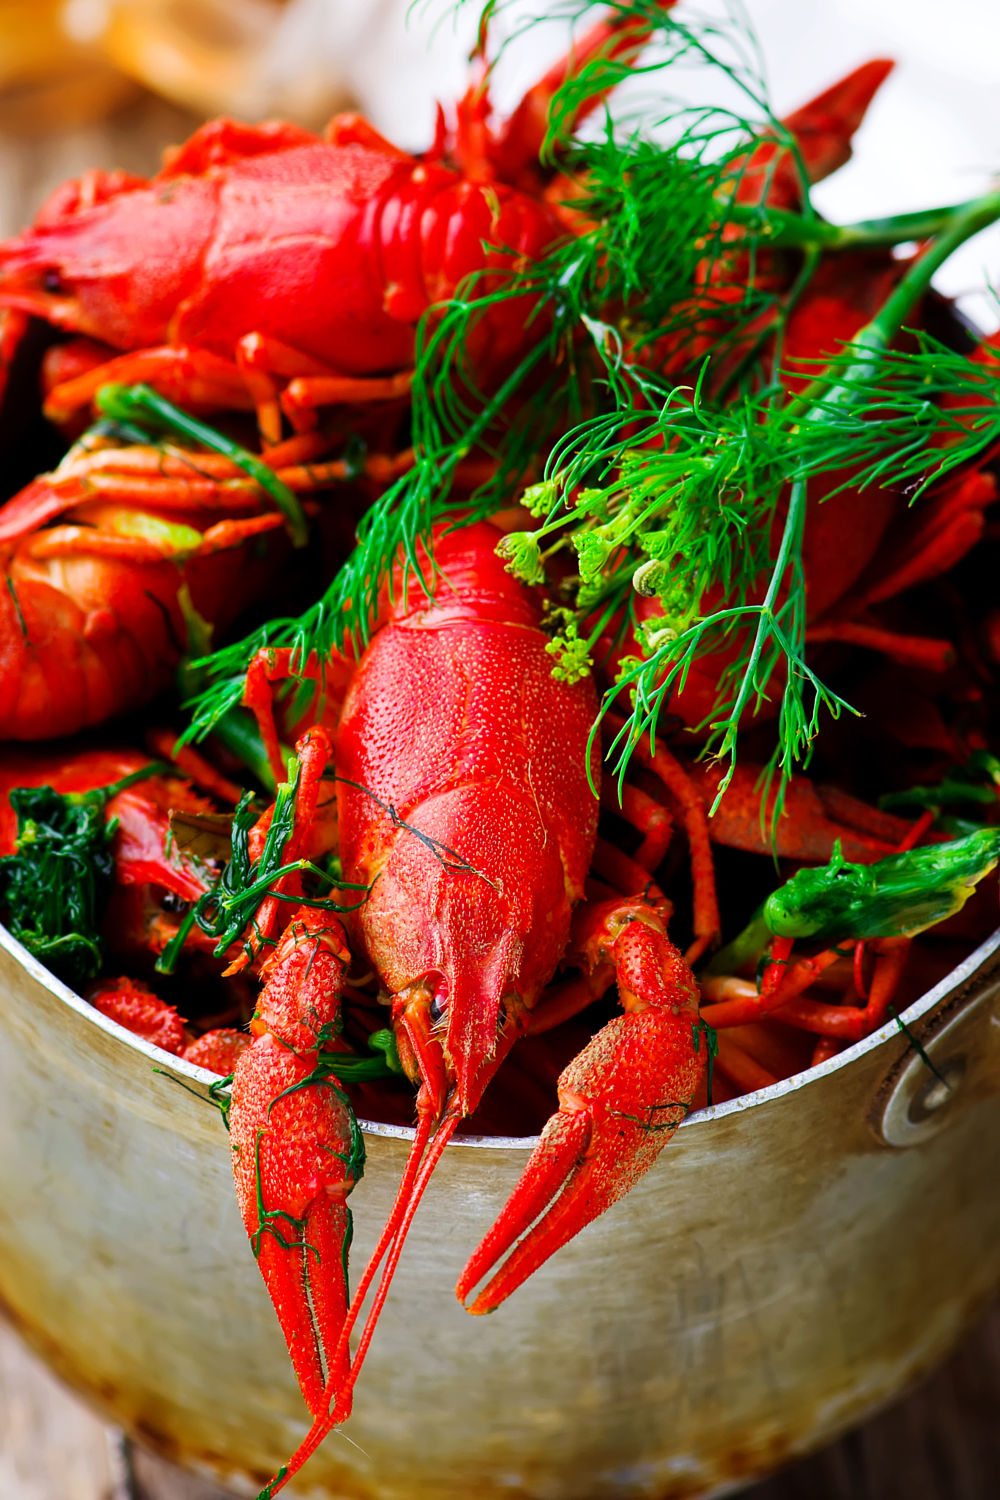 Boiled crayfish with dill